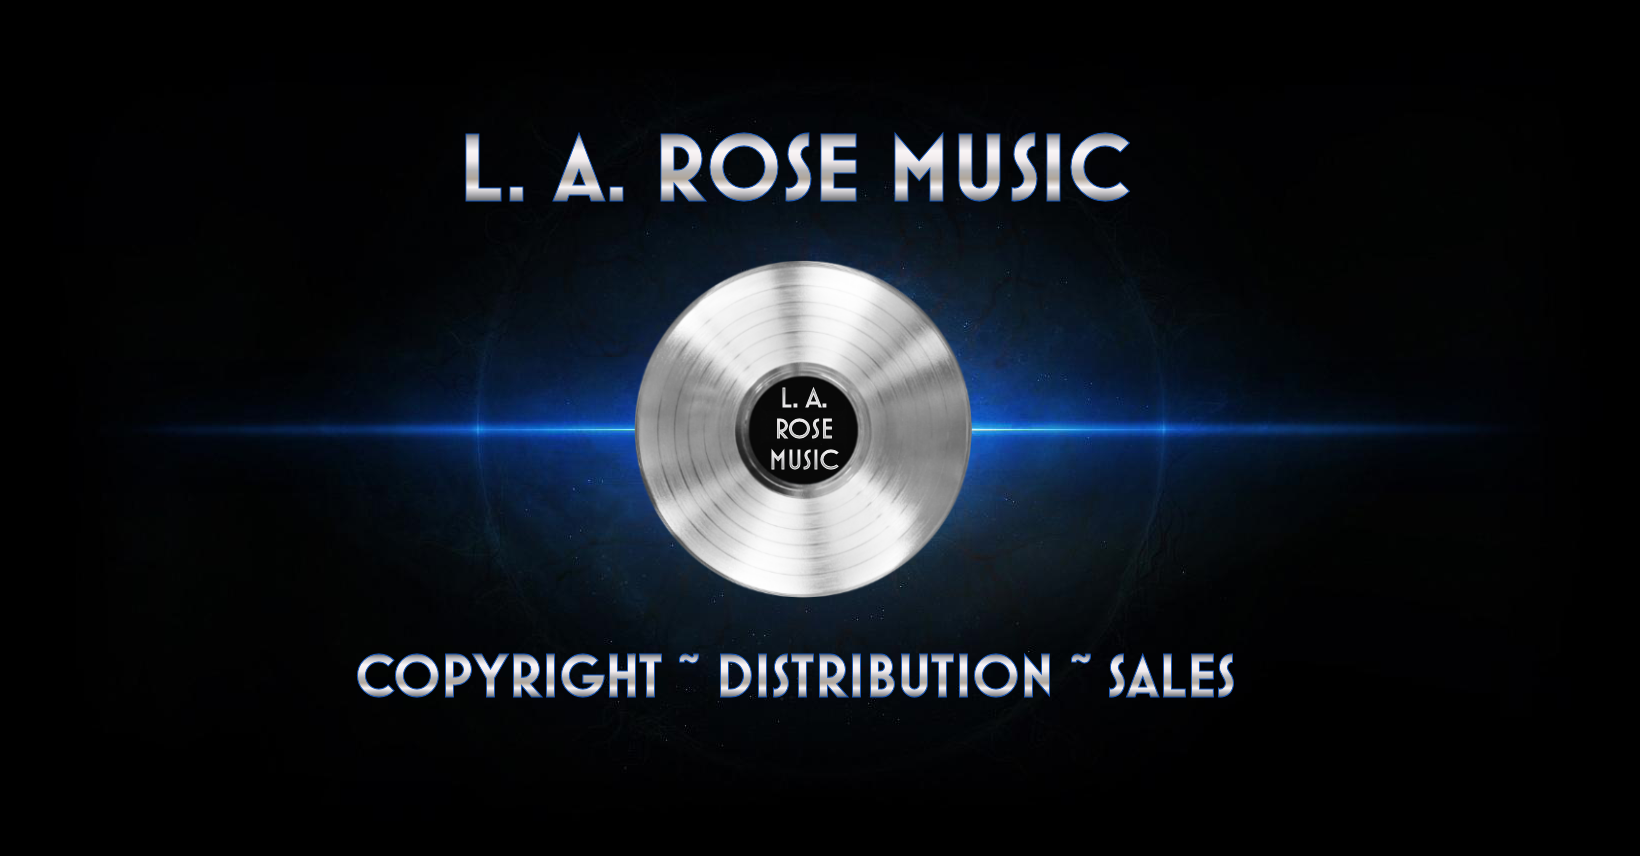 L A Rose Entertainment Music Record Label